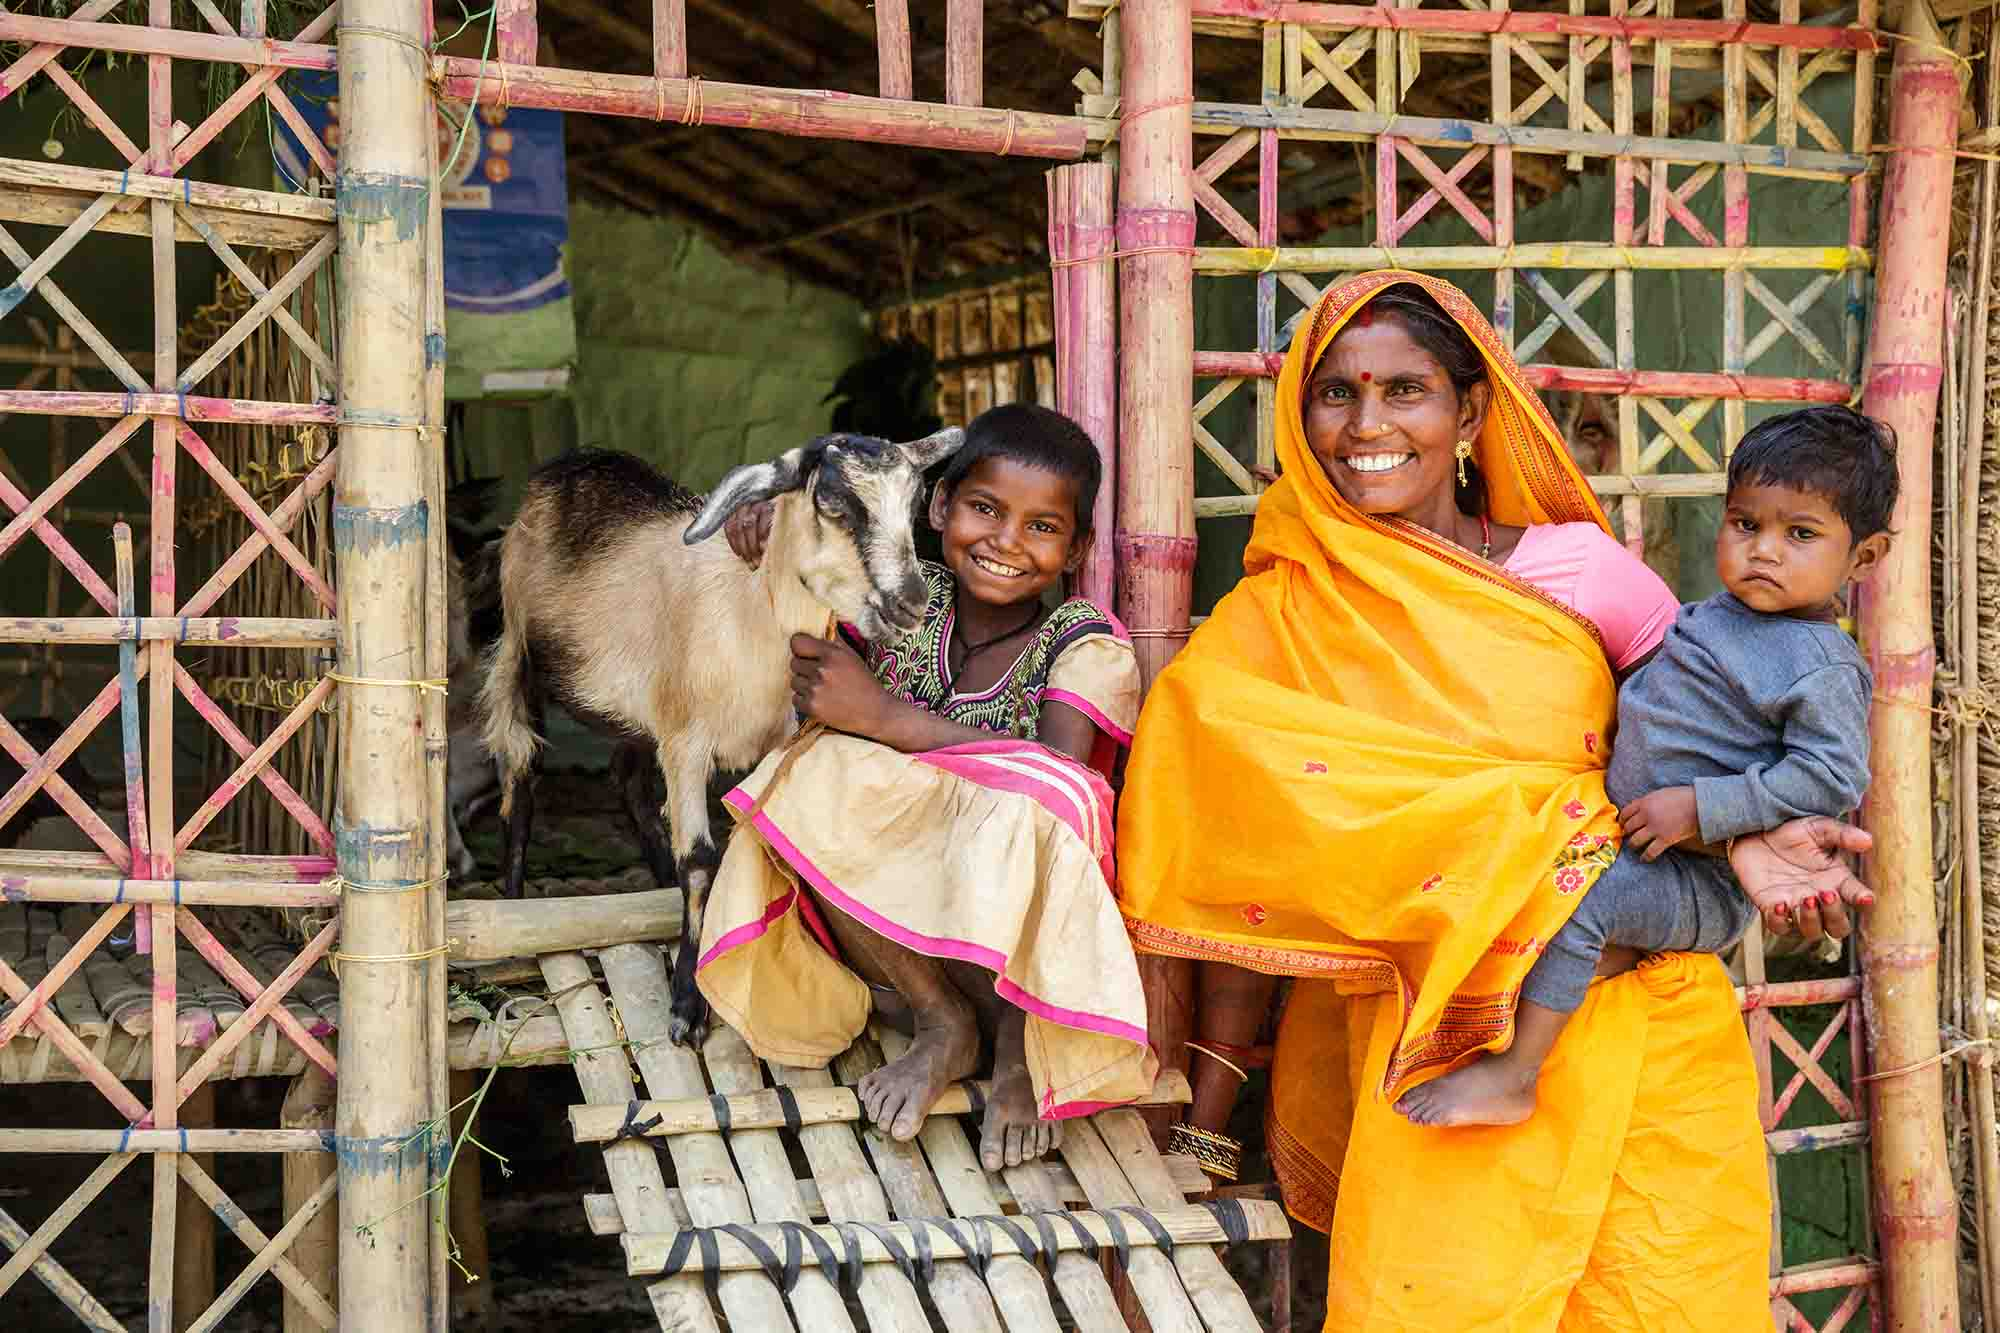 Sharada Devi, 48, and her daughters Nirmal Kumar, 8, and Manisha Kumar, 2, next to their family's goat pen.